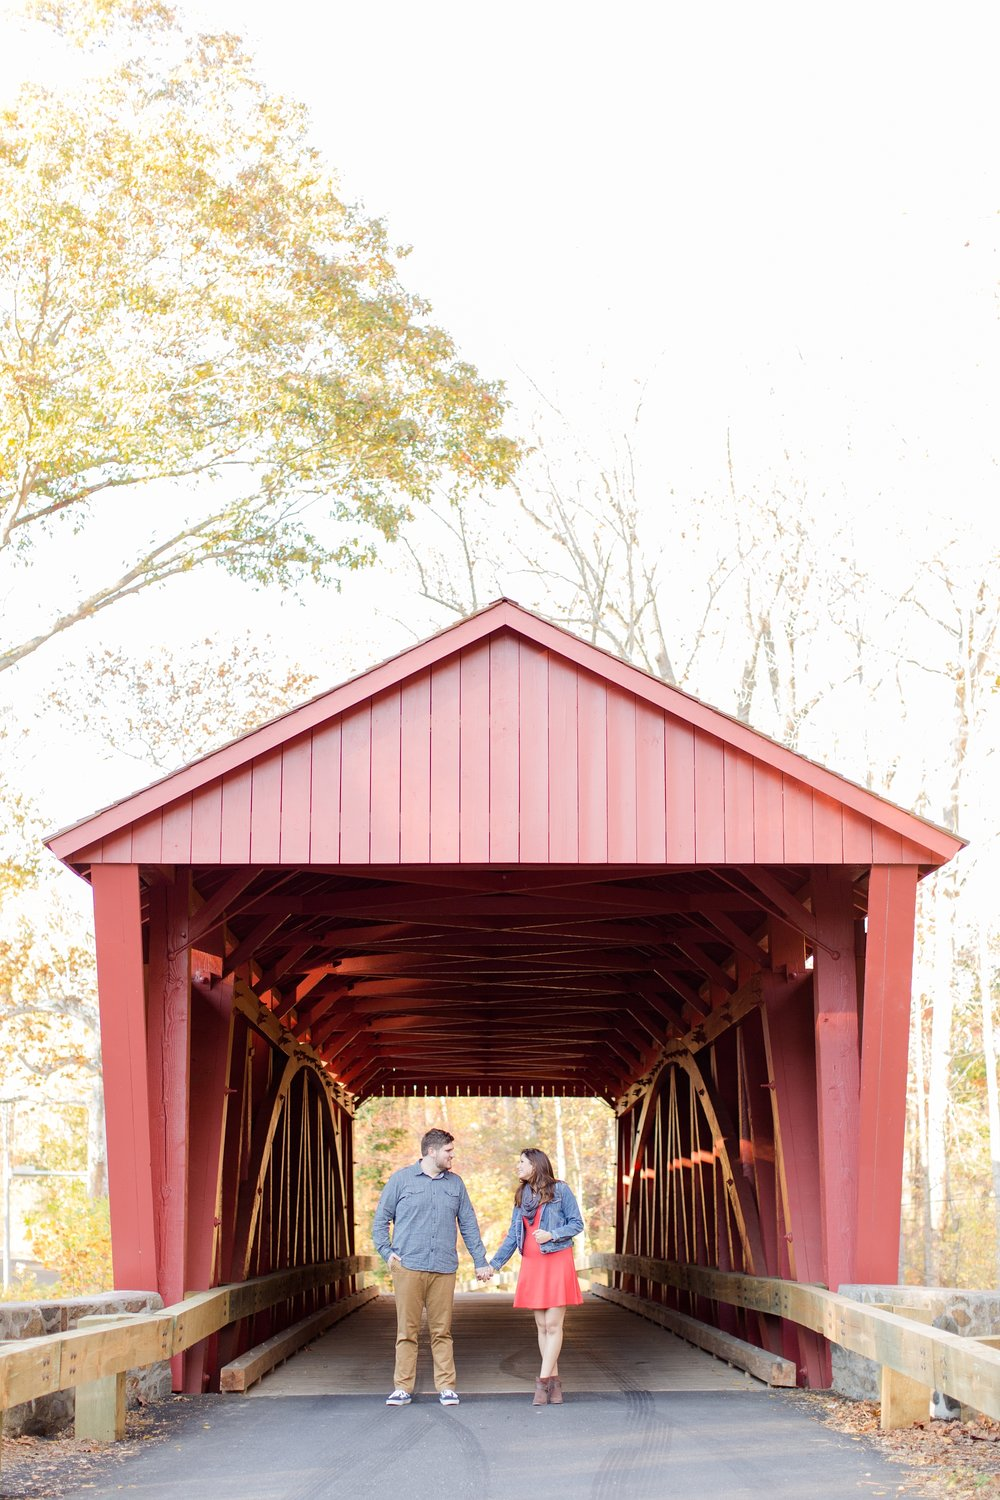 Rebecca & Greg Engagement-46_anna grace photography baltimore maryland engagement photographer jerusalem mill engagementphoto.jpg